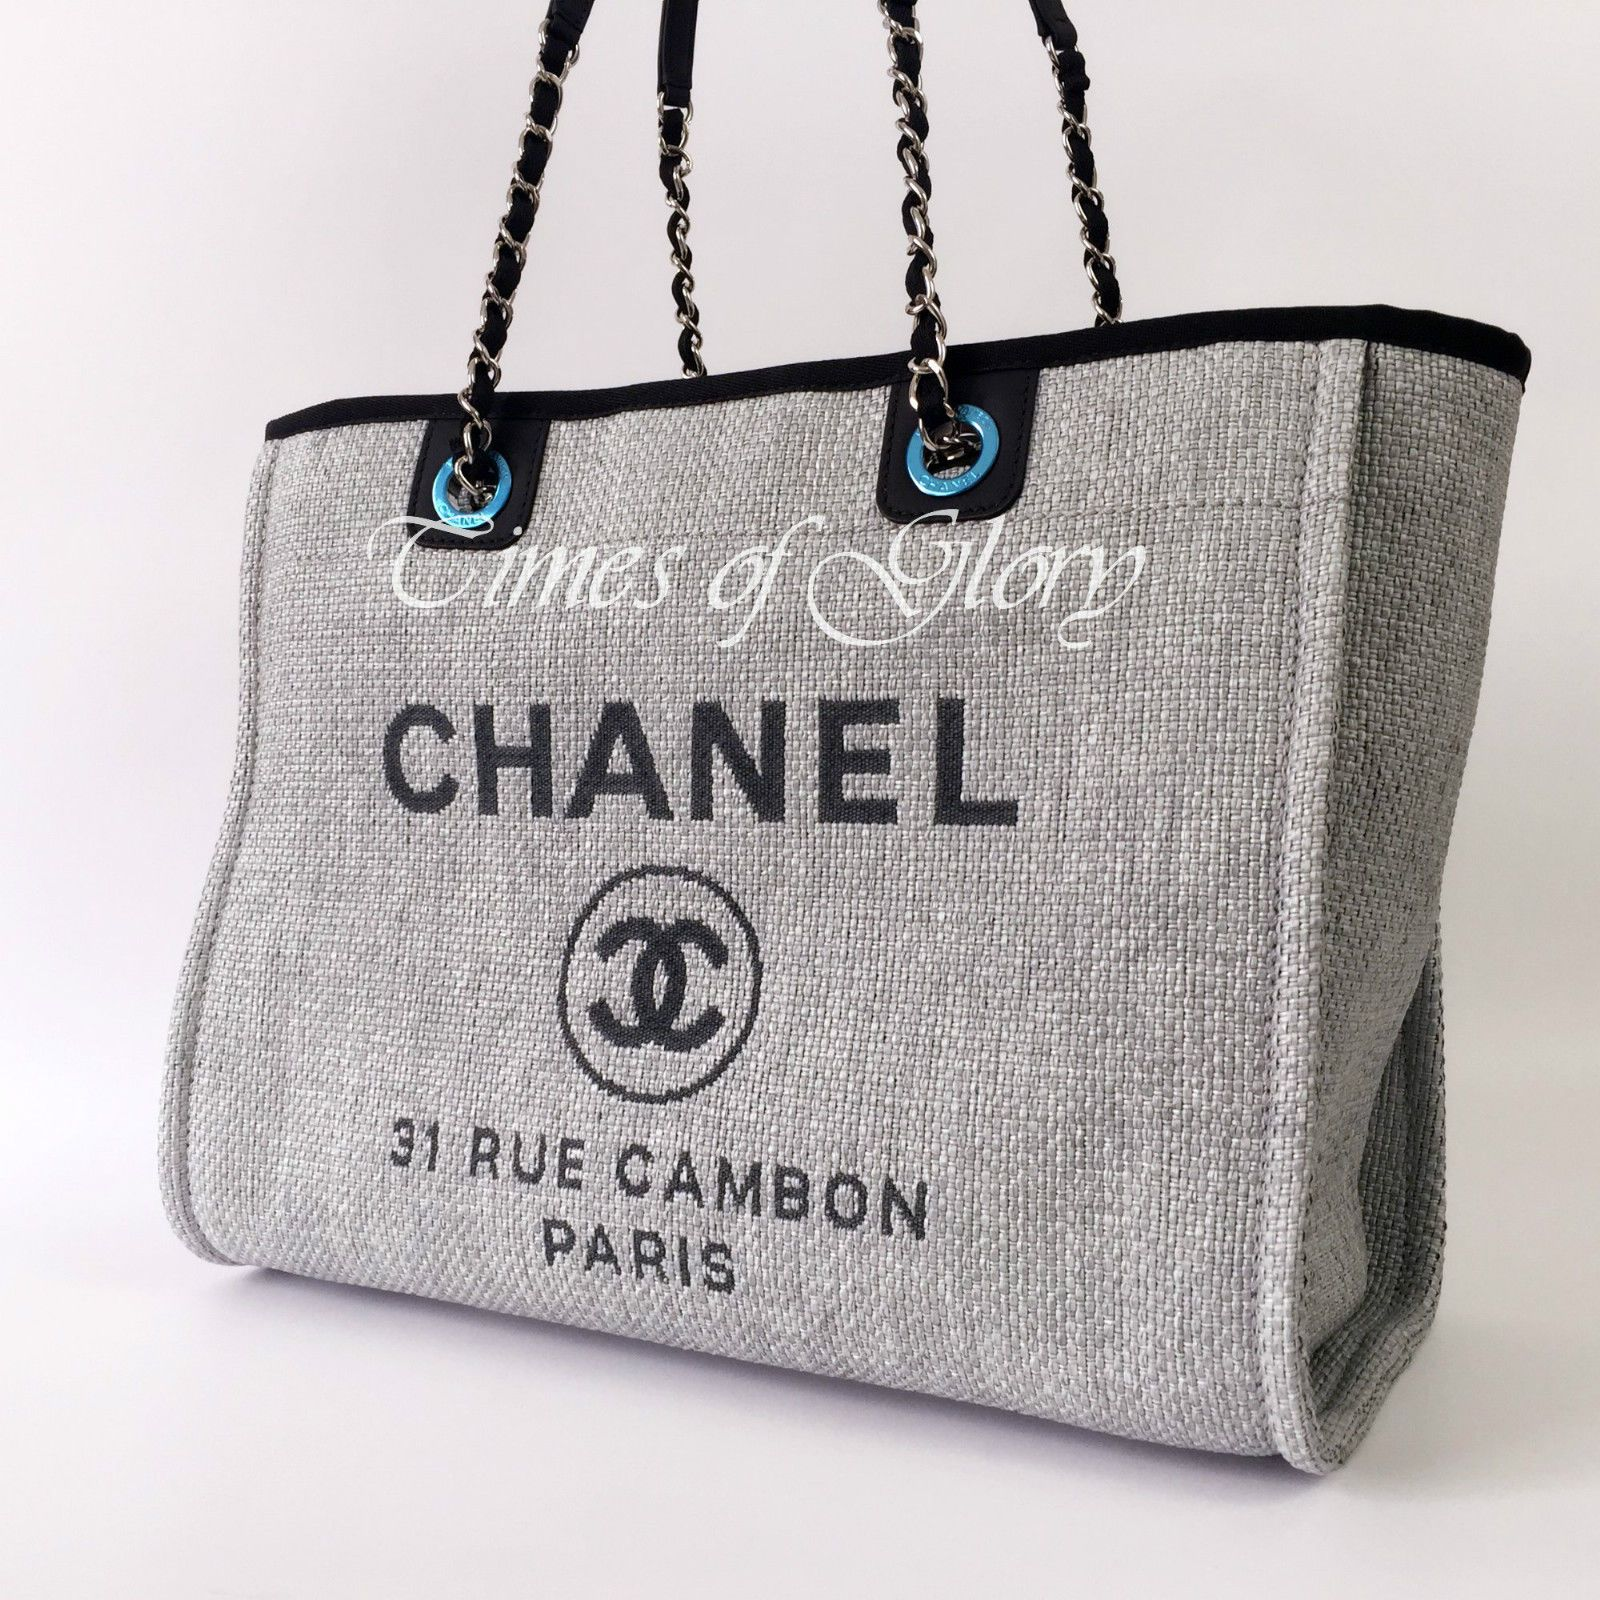 3a37b4f428a6 NEW 2016 Chanel Deauville Grey Canvas Black Trim Grand Shopper Large Tote  Bag | Clothes, Shoes & Accessories, Women's Handbags | eBay!